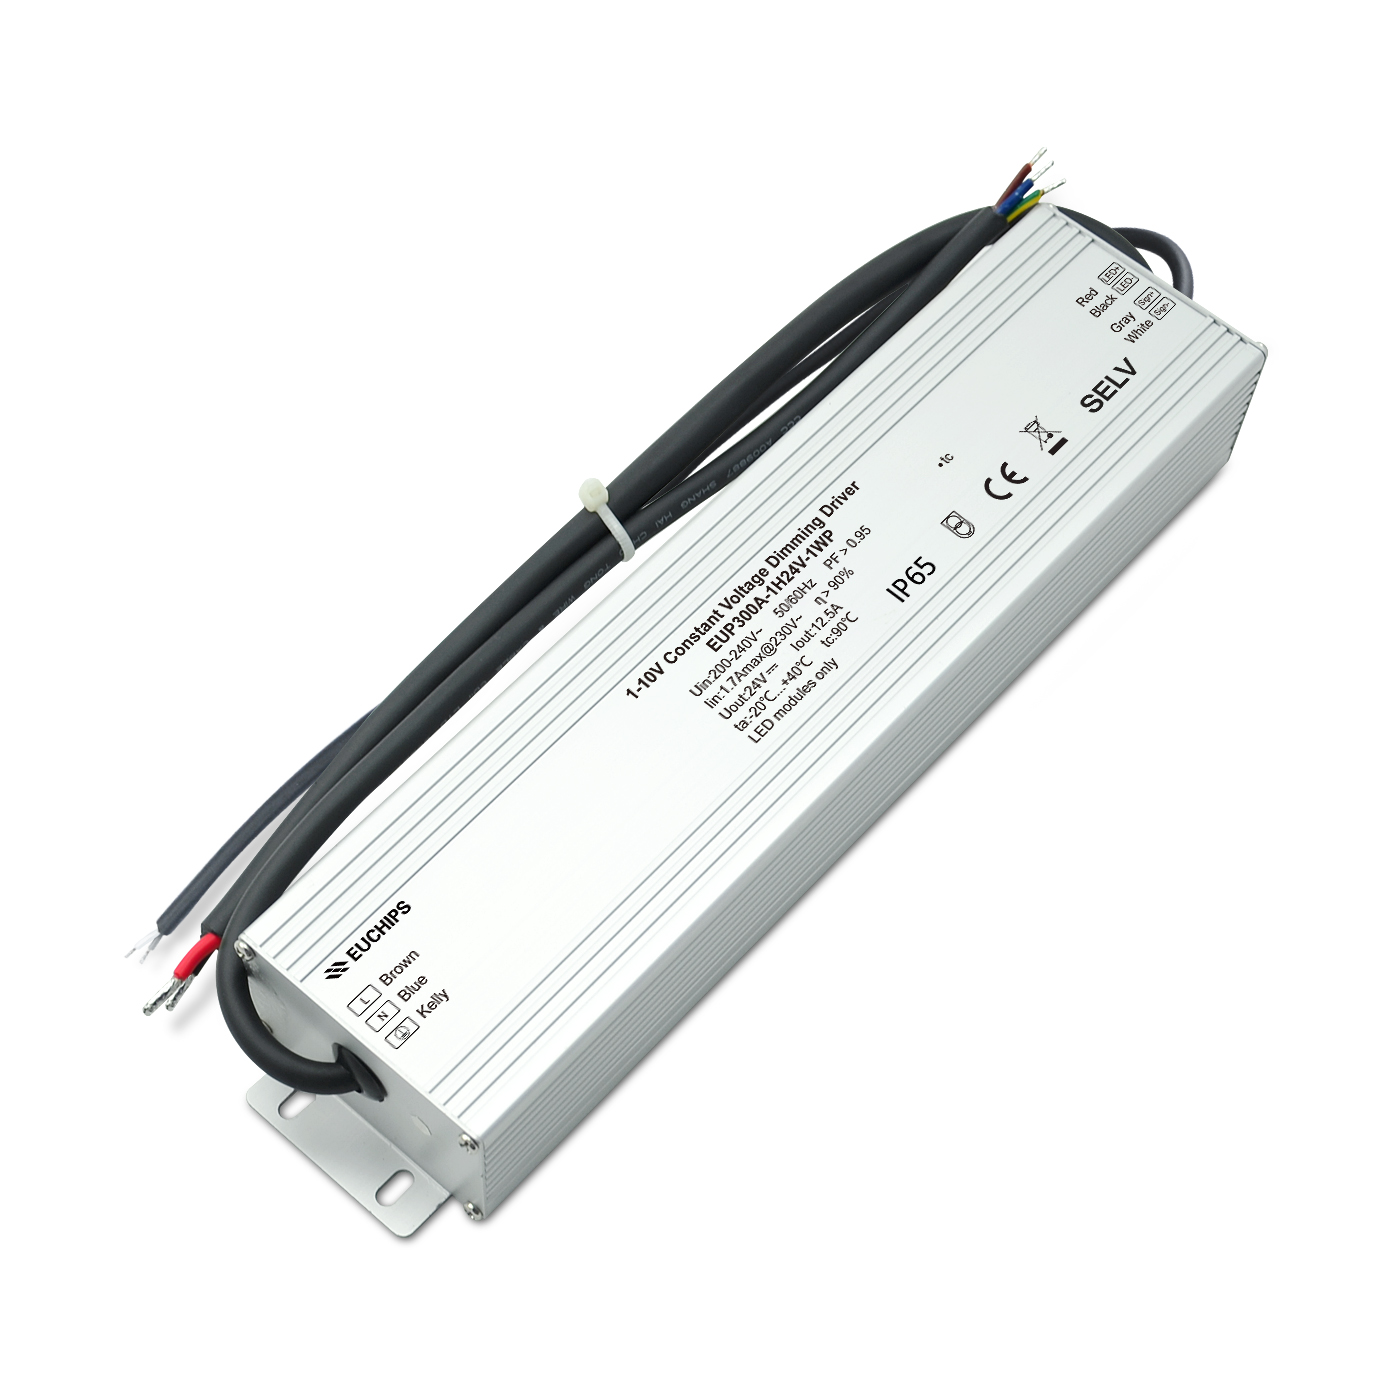 Competitive Price for 12v Dc Input Led Driver - 300w 0-10v constant voltage dimmable driver EUP300A-1H24V-0WP – Euchips